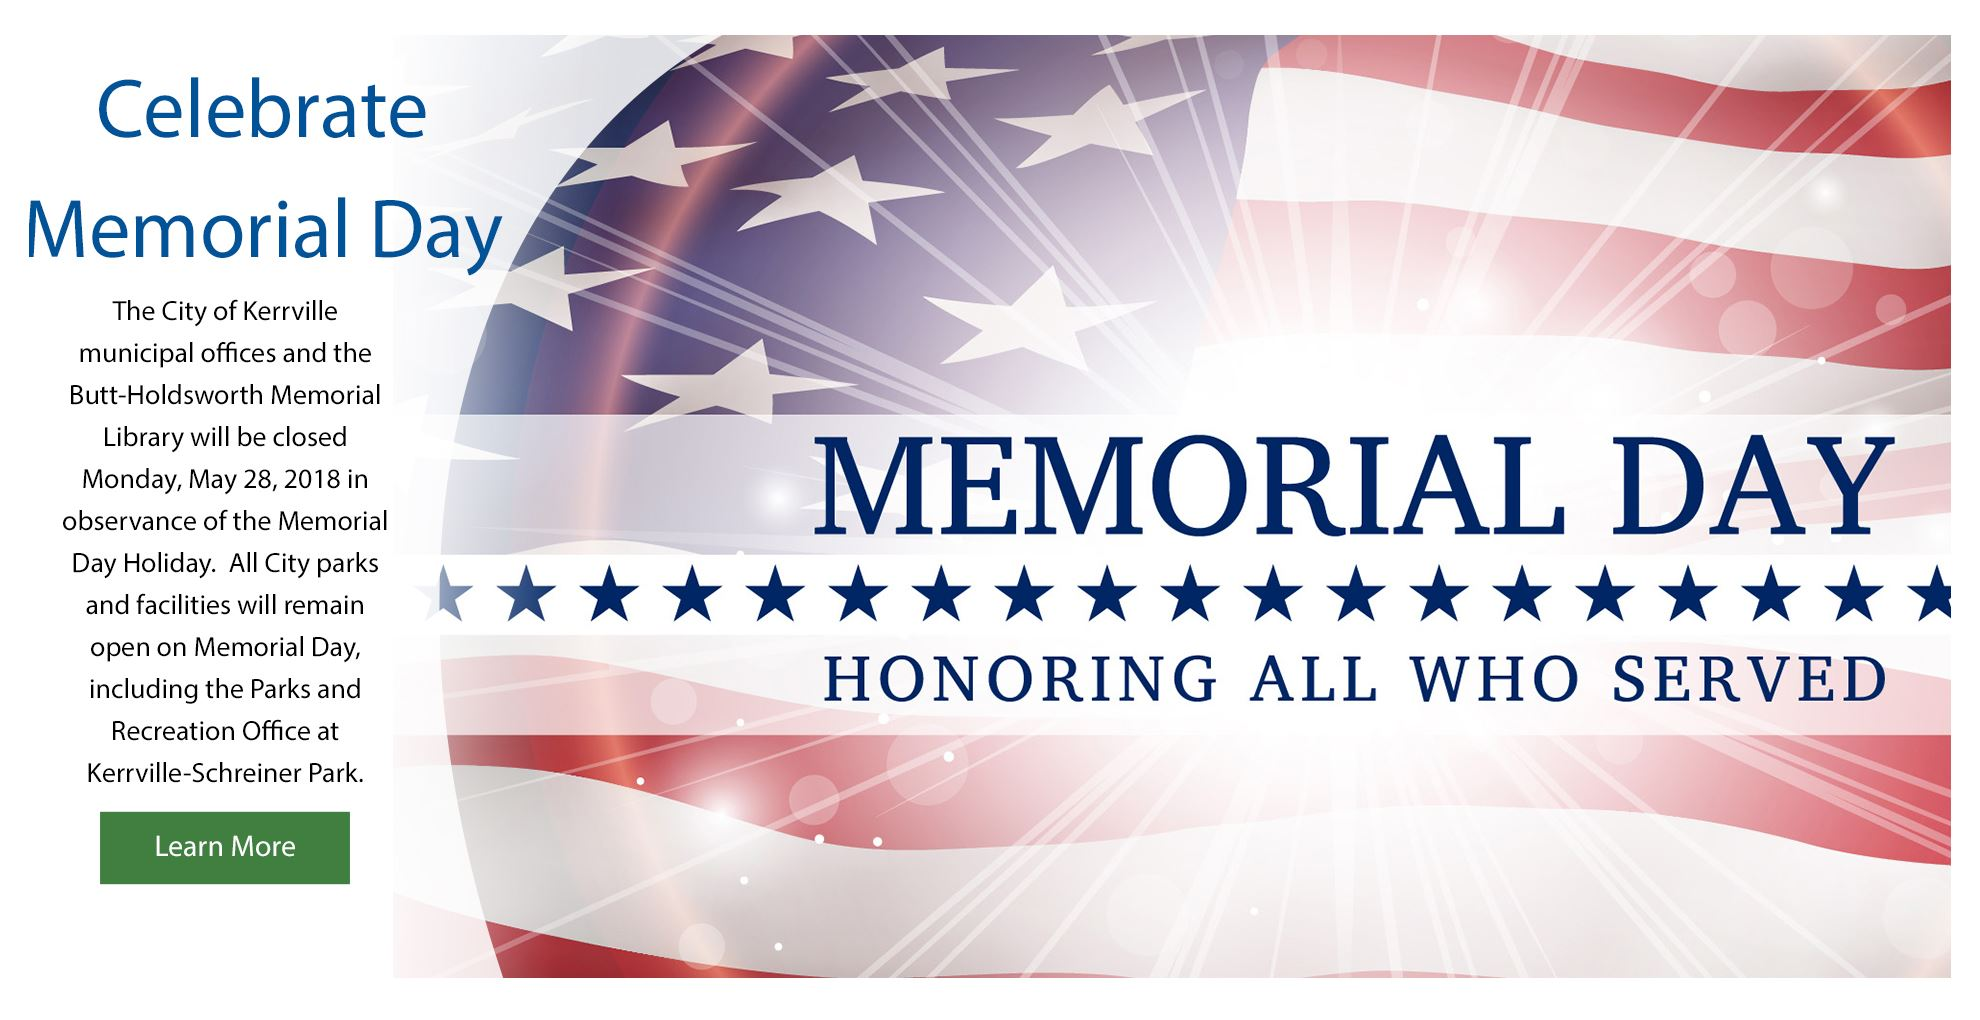 The City of Kerrville municipal offices and the Butt-Holdsworth Memorial Library will be closed Monday, May 28, 2018 in observance of the Memorial Day Holiday.